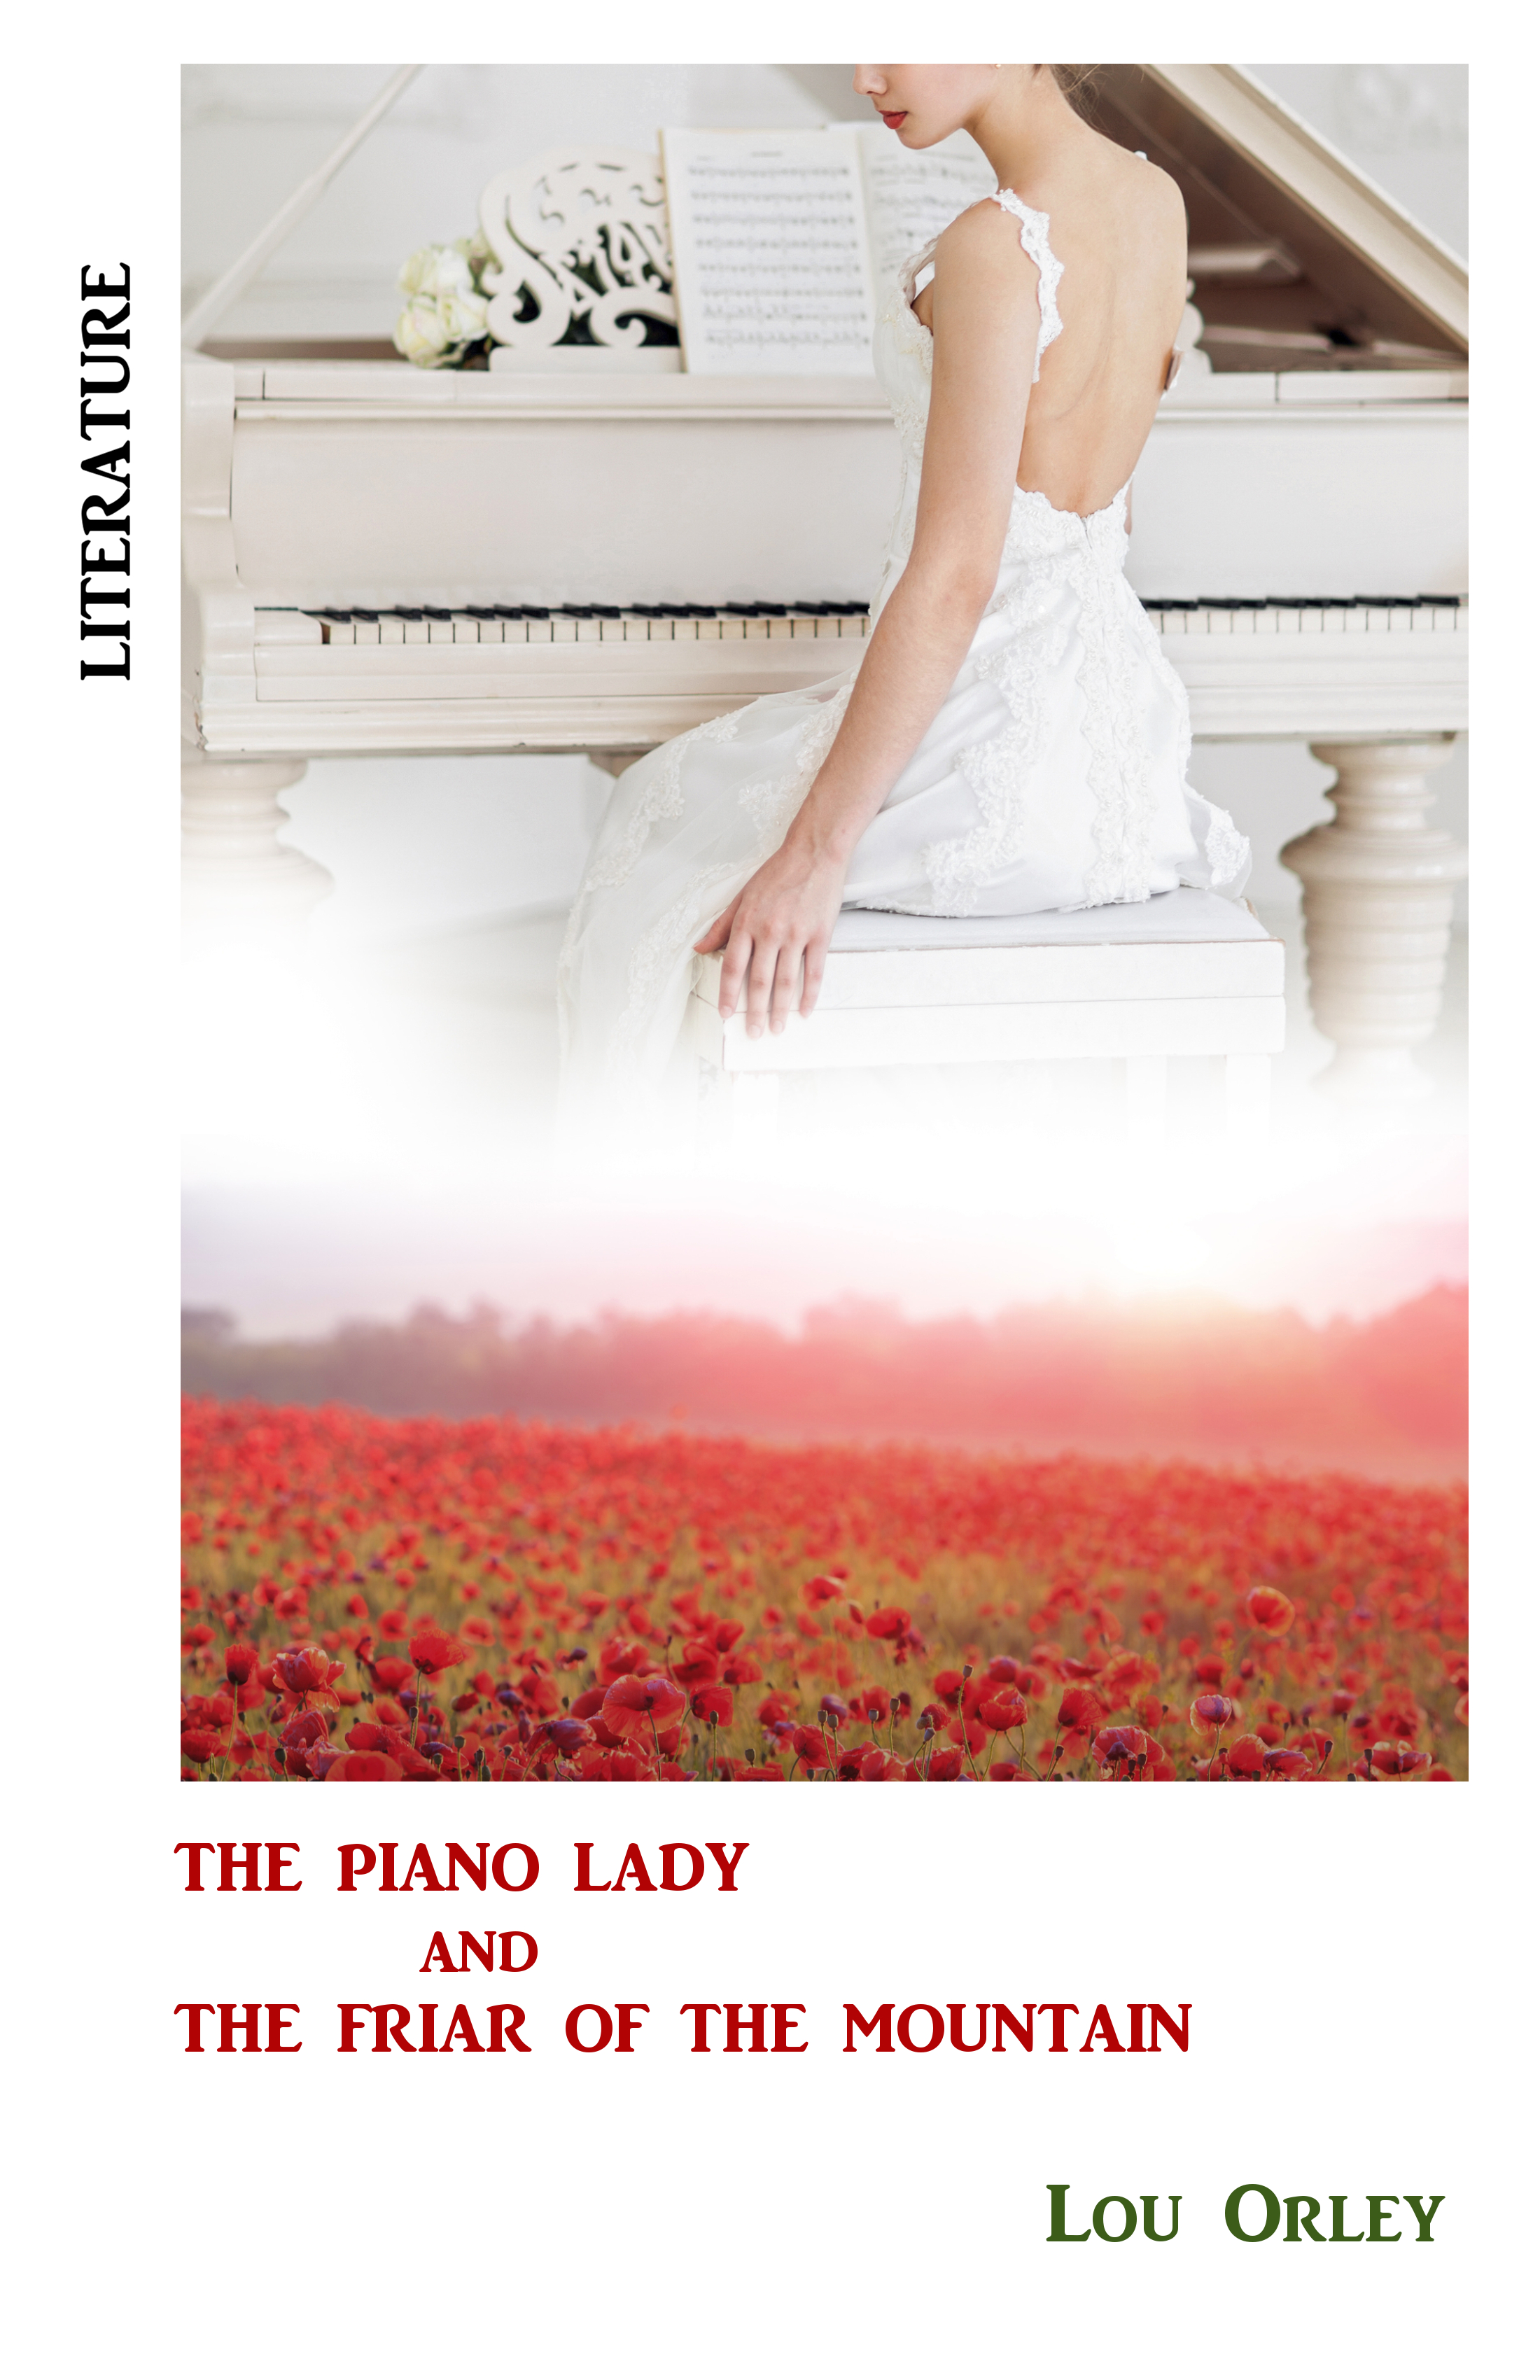 The Piano Lady and the Friar of the Mountain